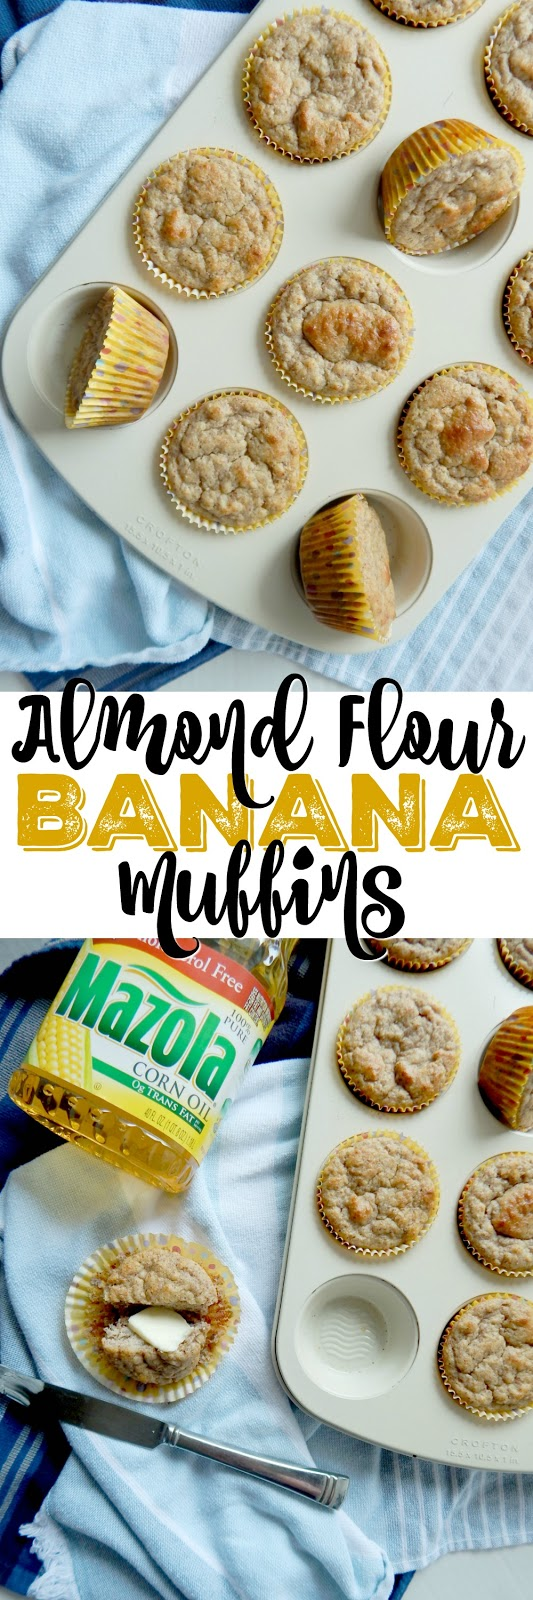 Almond Flour Banana Muffins...a few swaps {corn oil, Greek yogurt, cinnamon applesauce, almond flour} make this healthier muffin an easy grab-n-go option on busy weekday mornings! #ad #MakeItMazola #simpleswap #CollectiveBias (sweetandsavoryfood.com)